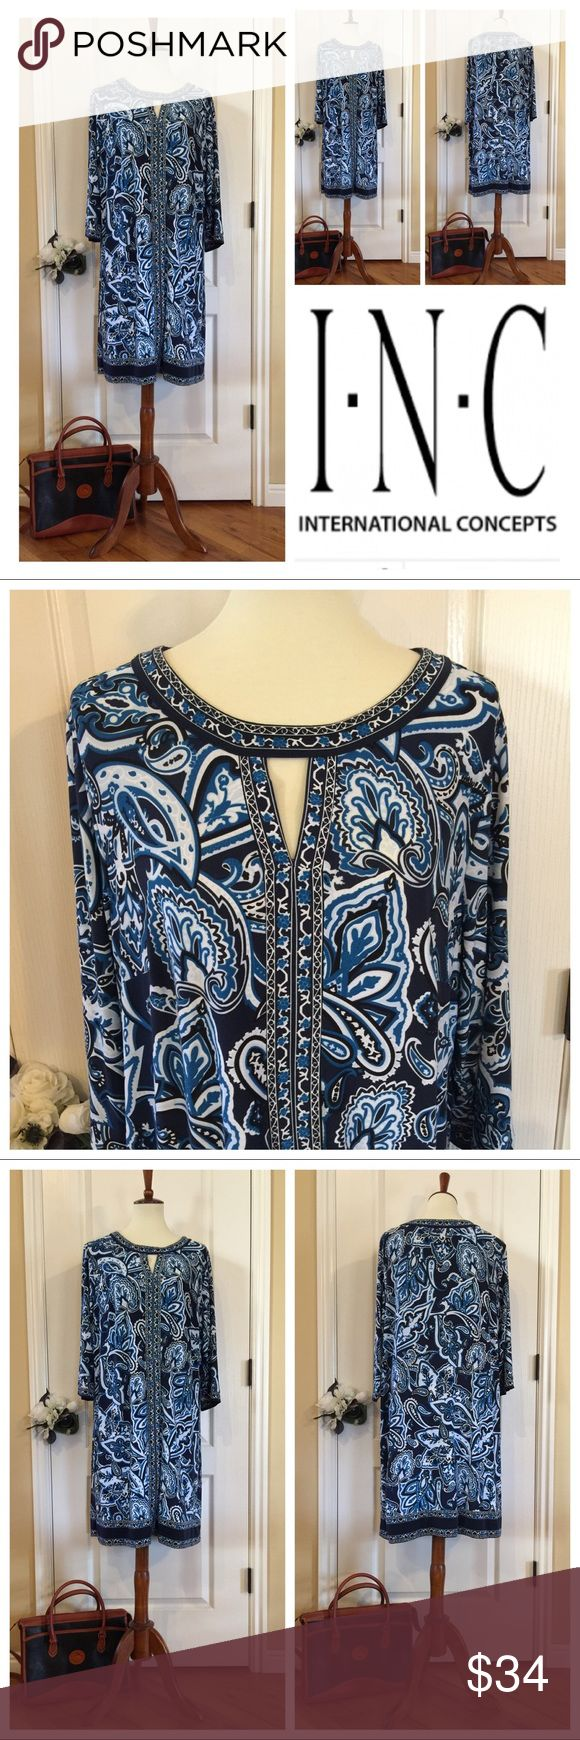 NWOT INC Dress Beautiful NWOT INC Dress. Size 1X. Listing is for the dress only. Will be listing the Dooney & Bourke in a separate listing. INC International Concepts Dresses